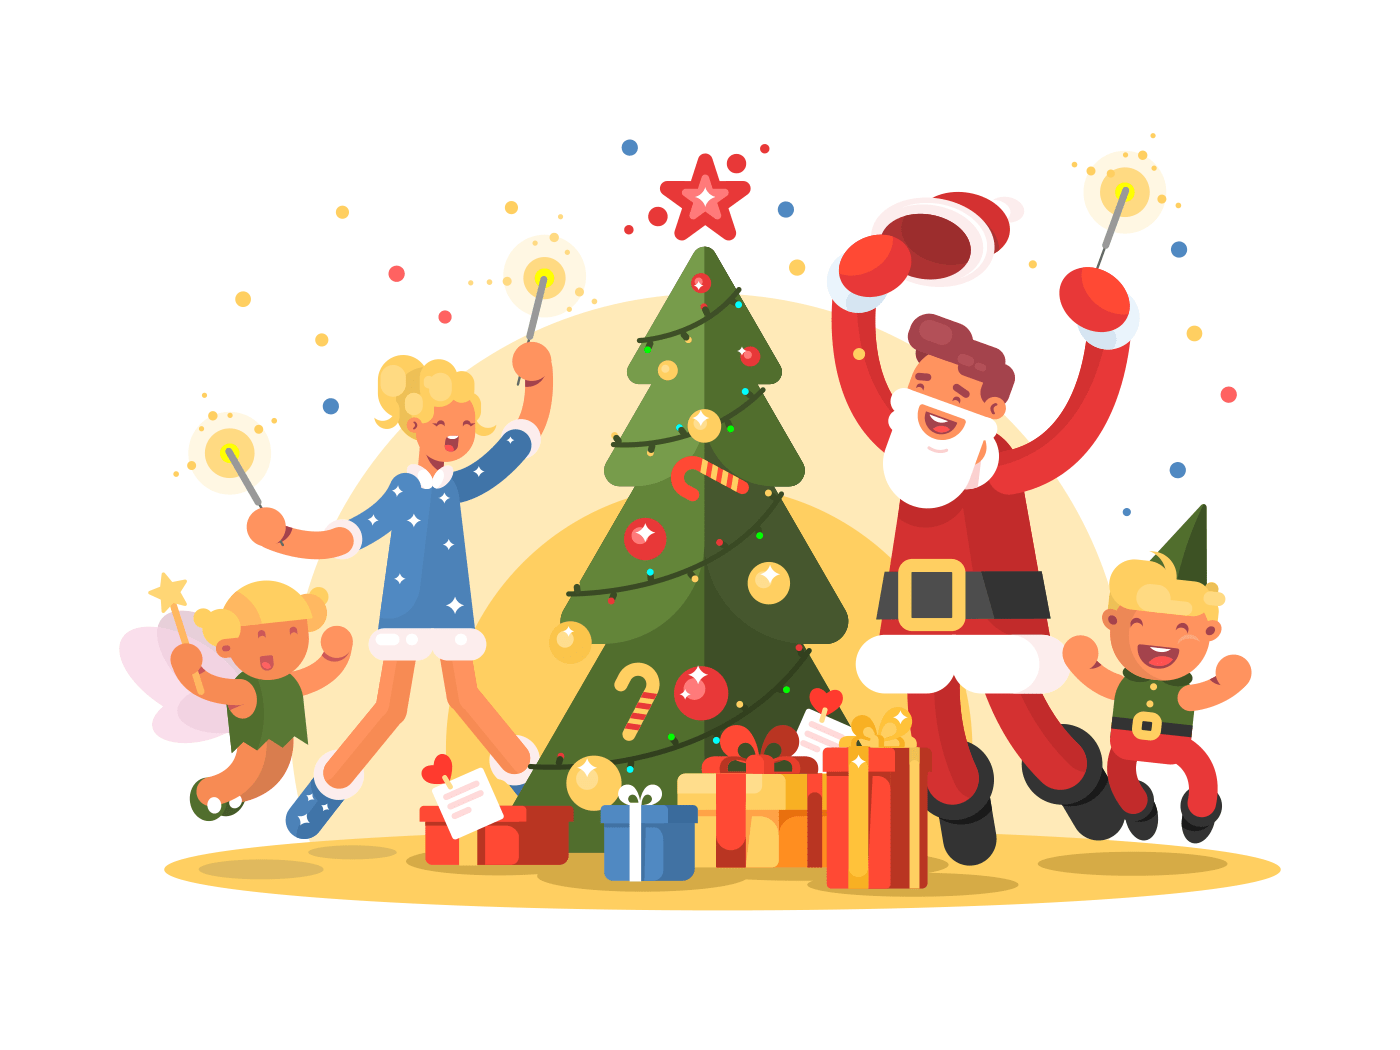 Happy family celebrating xmas illustration